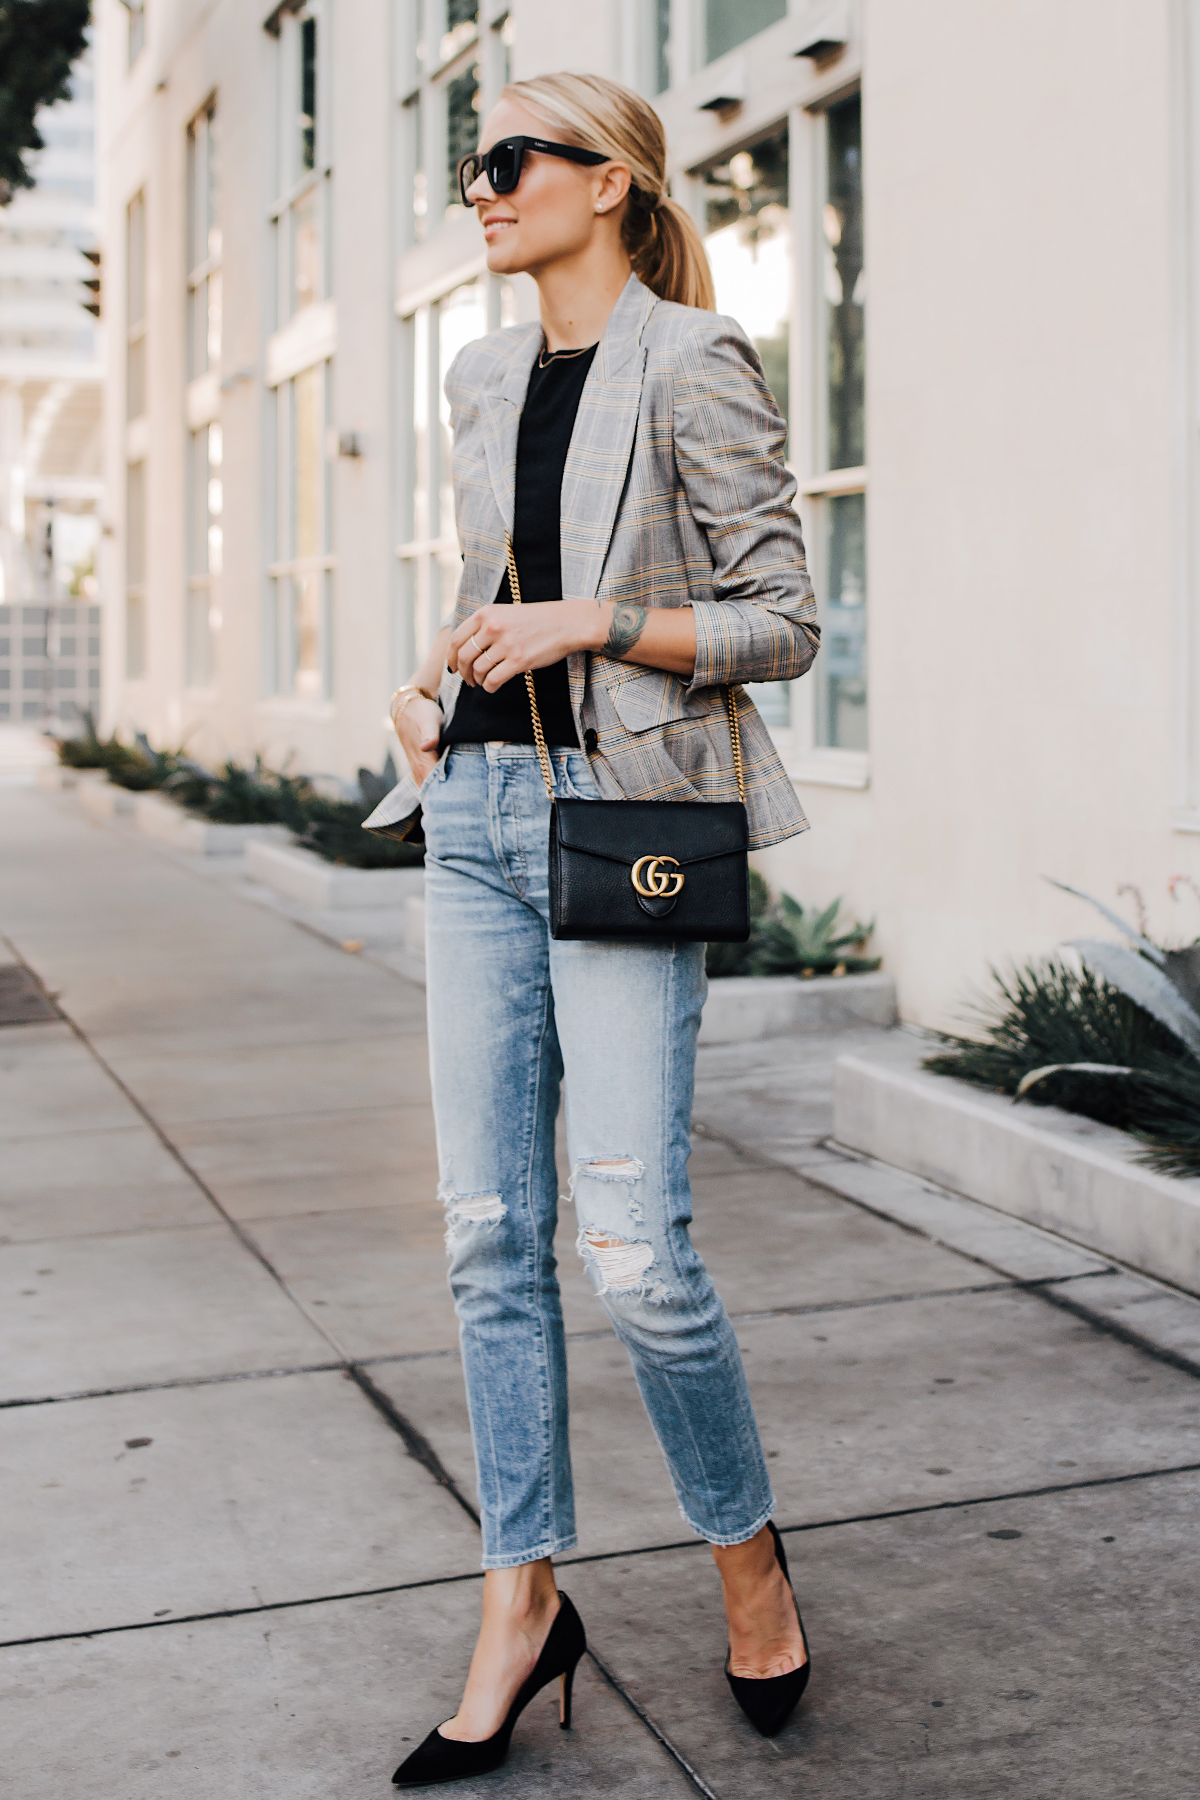 Blonde Woman Wearting Plaid Blazer Mother Ripped Denim Jeans Black Pumps Gucci Black Handbag Fashion Jackson San Diego Fashion Blogger Street Style